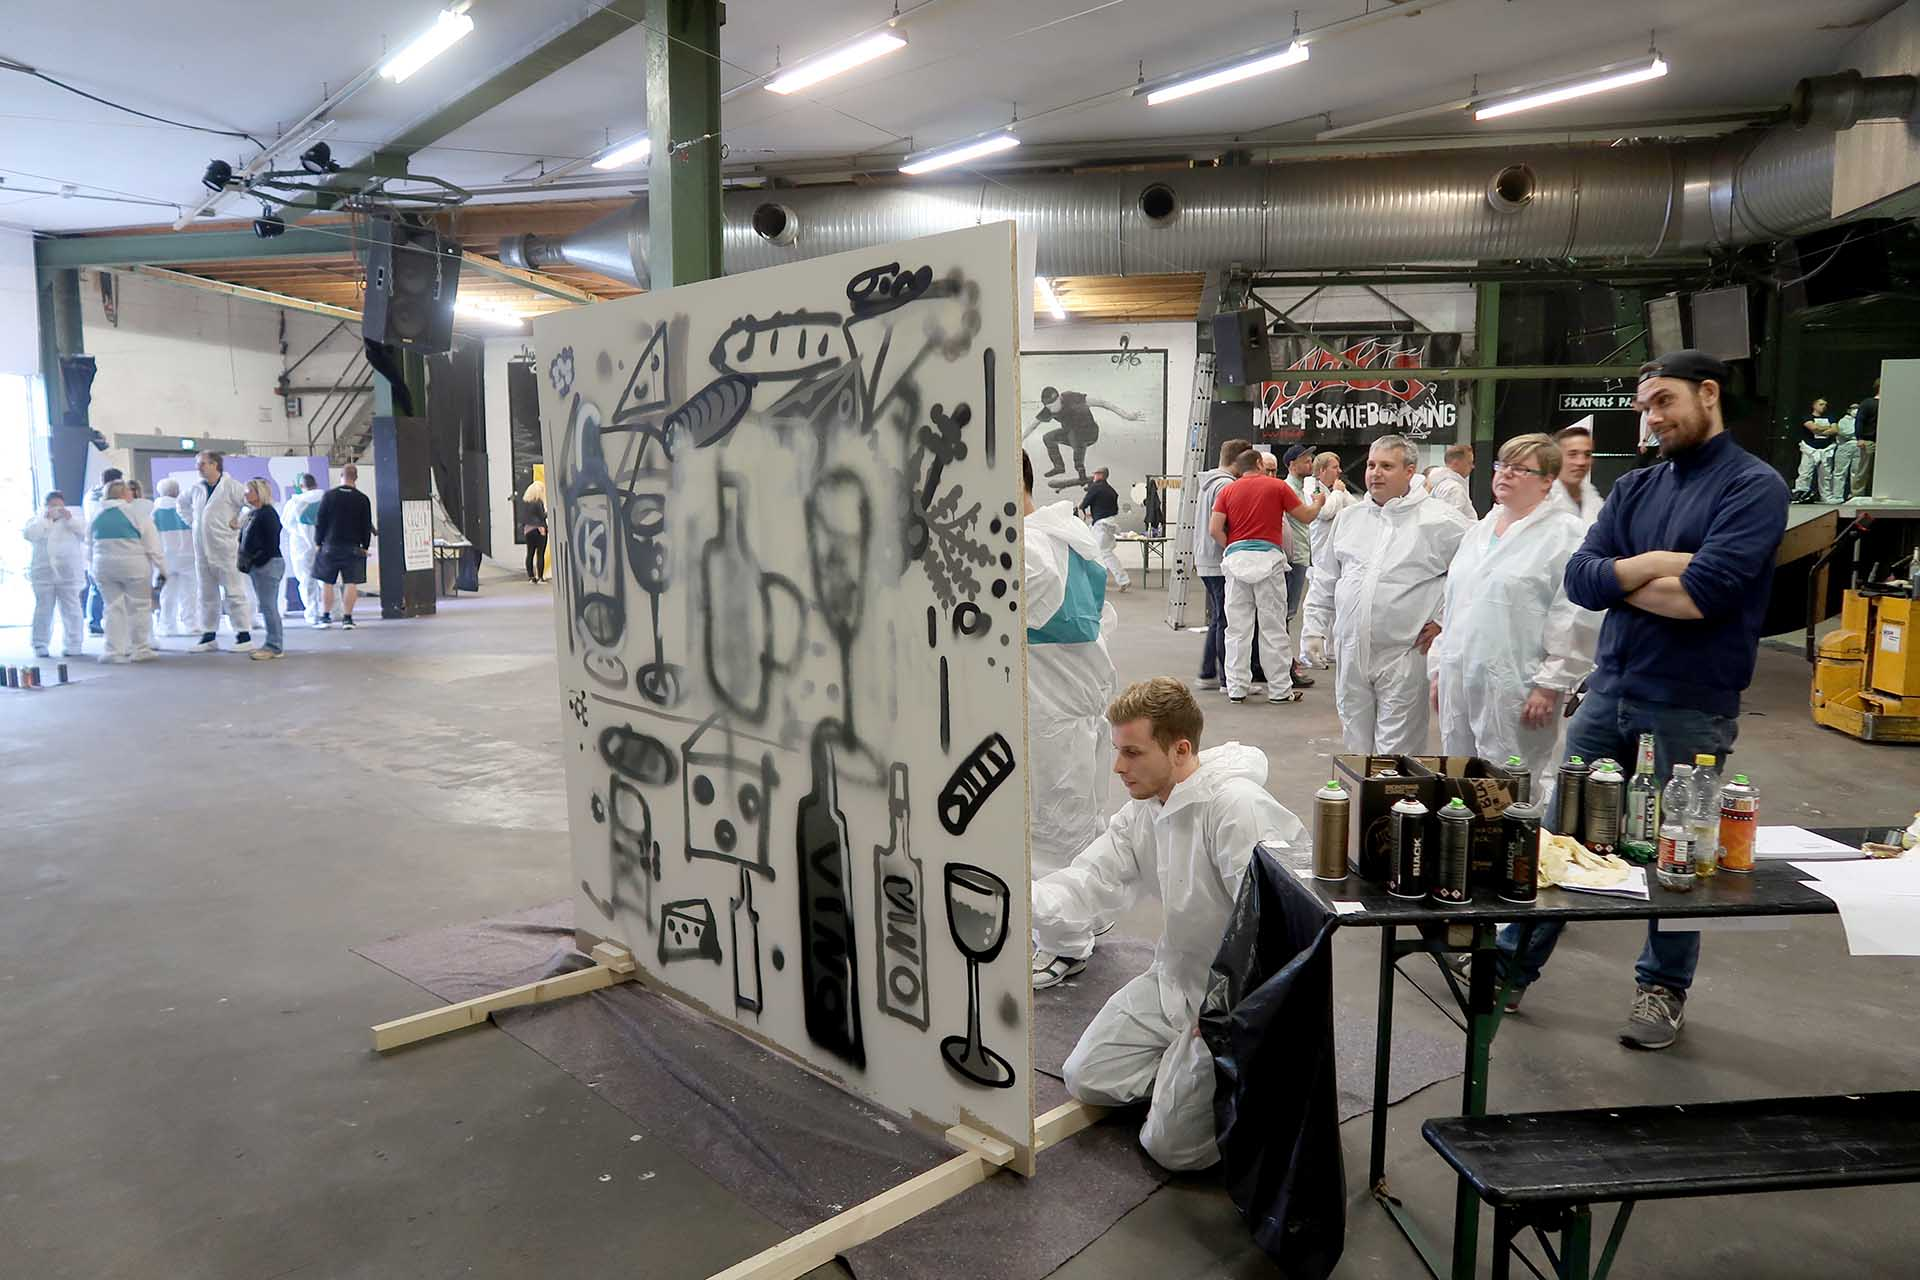 Graffiti Workshop, Skaters Palace, Sprayen, Lernen, Firma, Event, Team, Graffiti, Münster, Bennet Grüttner